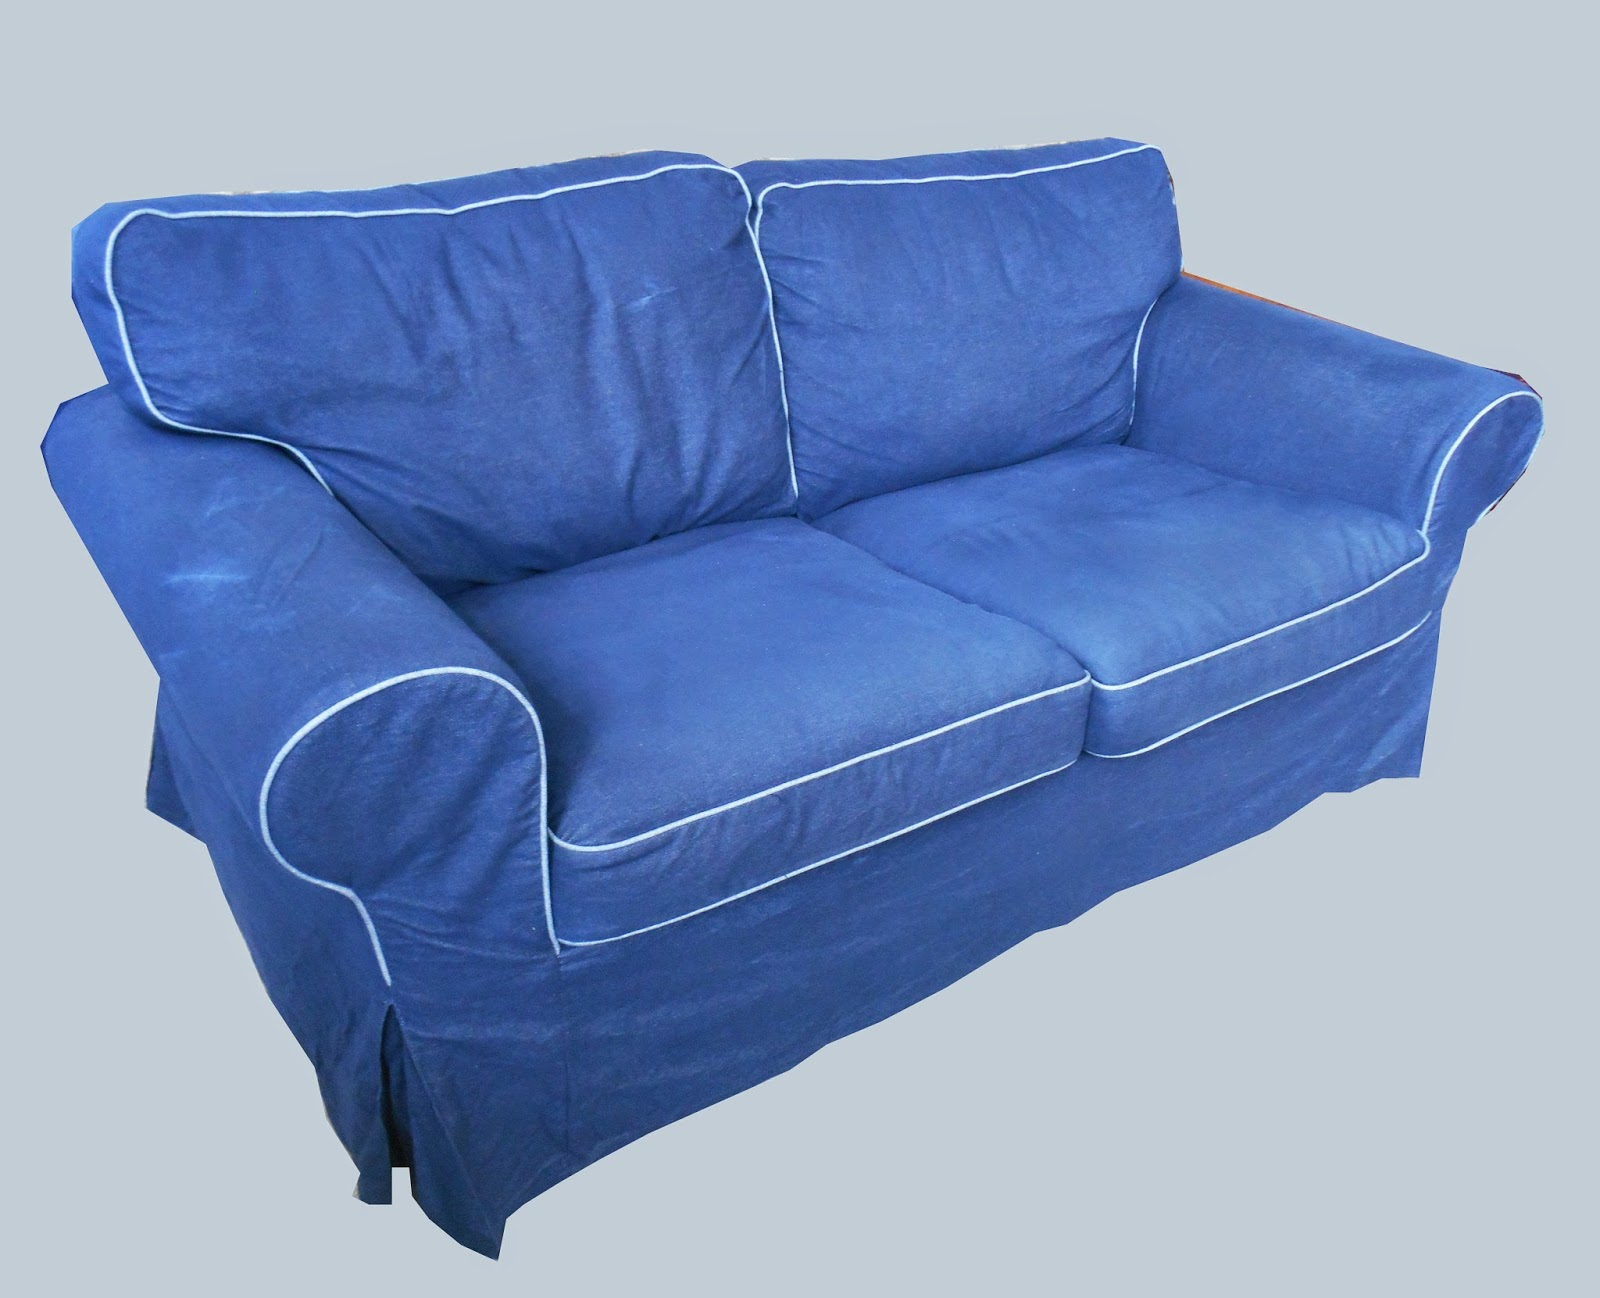 Uhuru furniture collectibles loveseat w classic denim slipcover 195 sold Denim loveseat